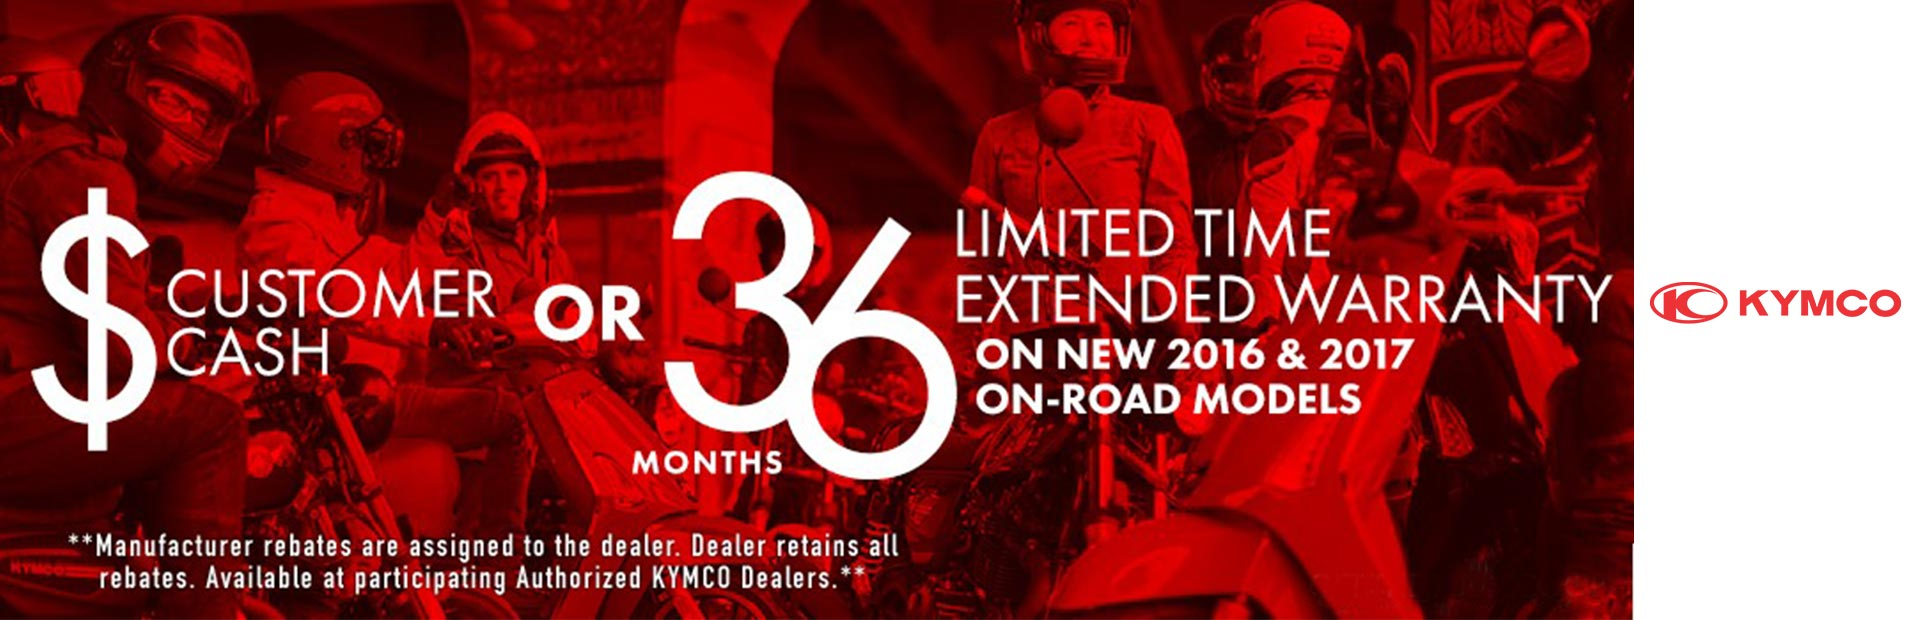 KYMCO: Kymco Customer Cash or Extended Warranty On Road